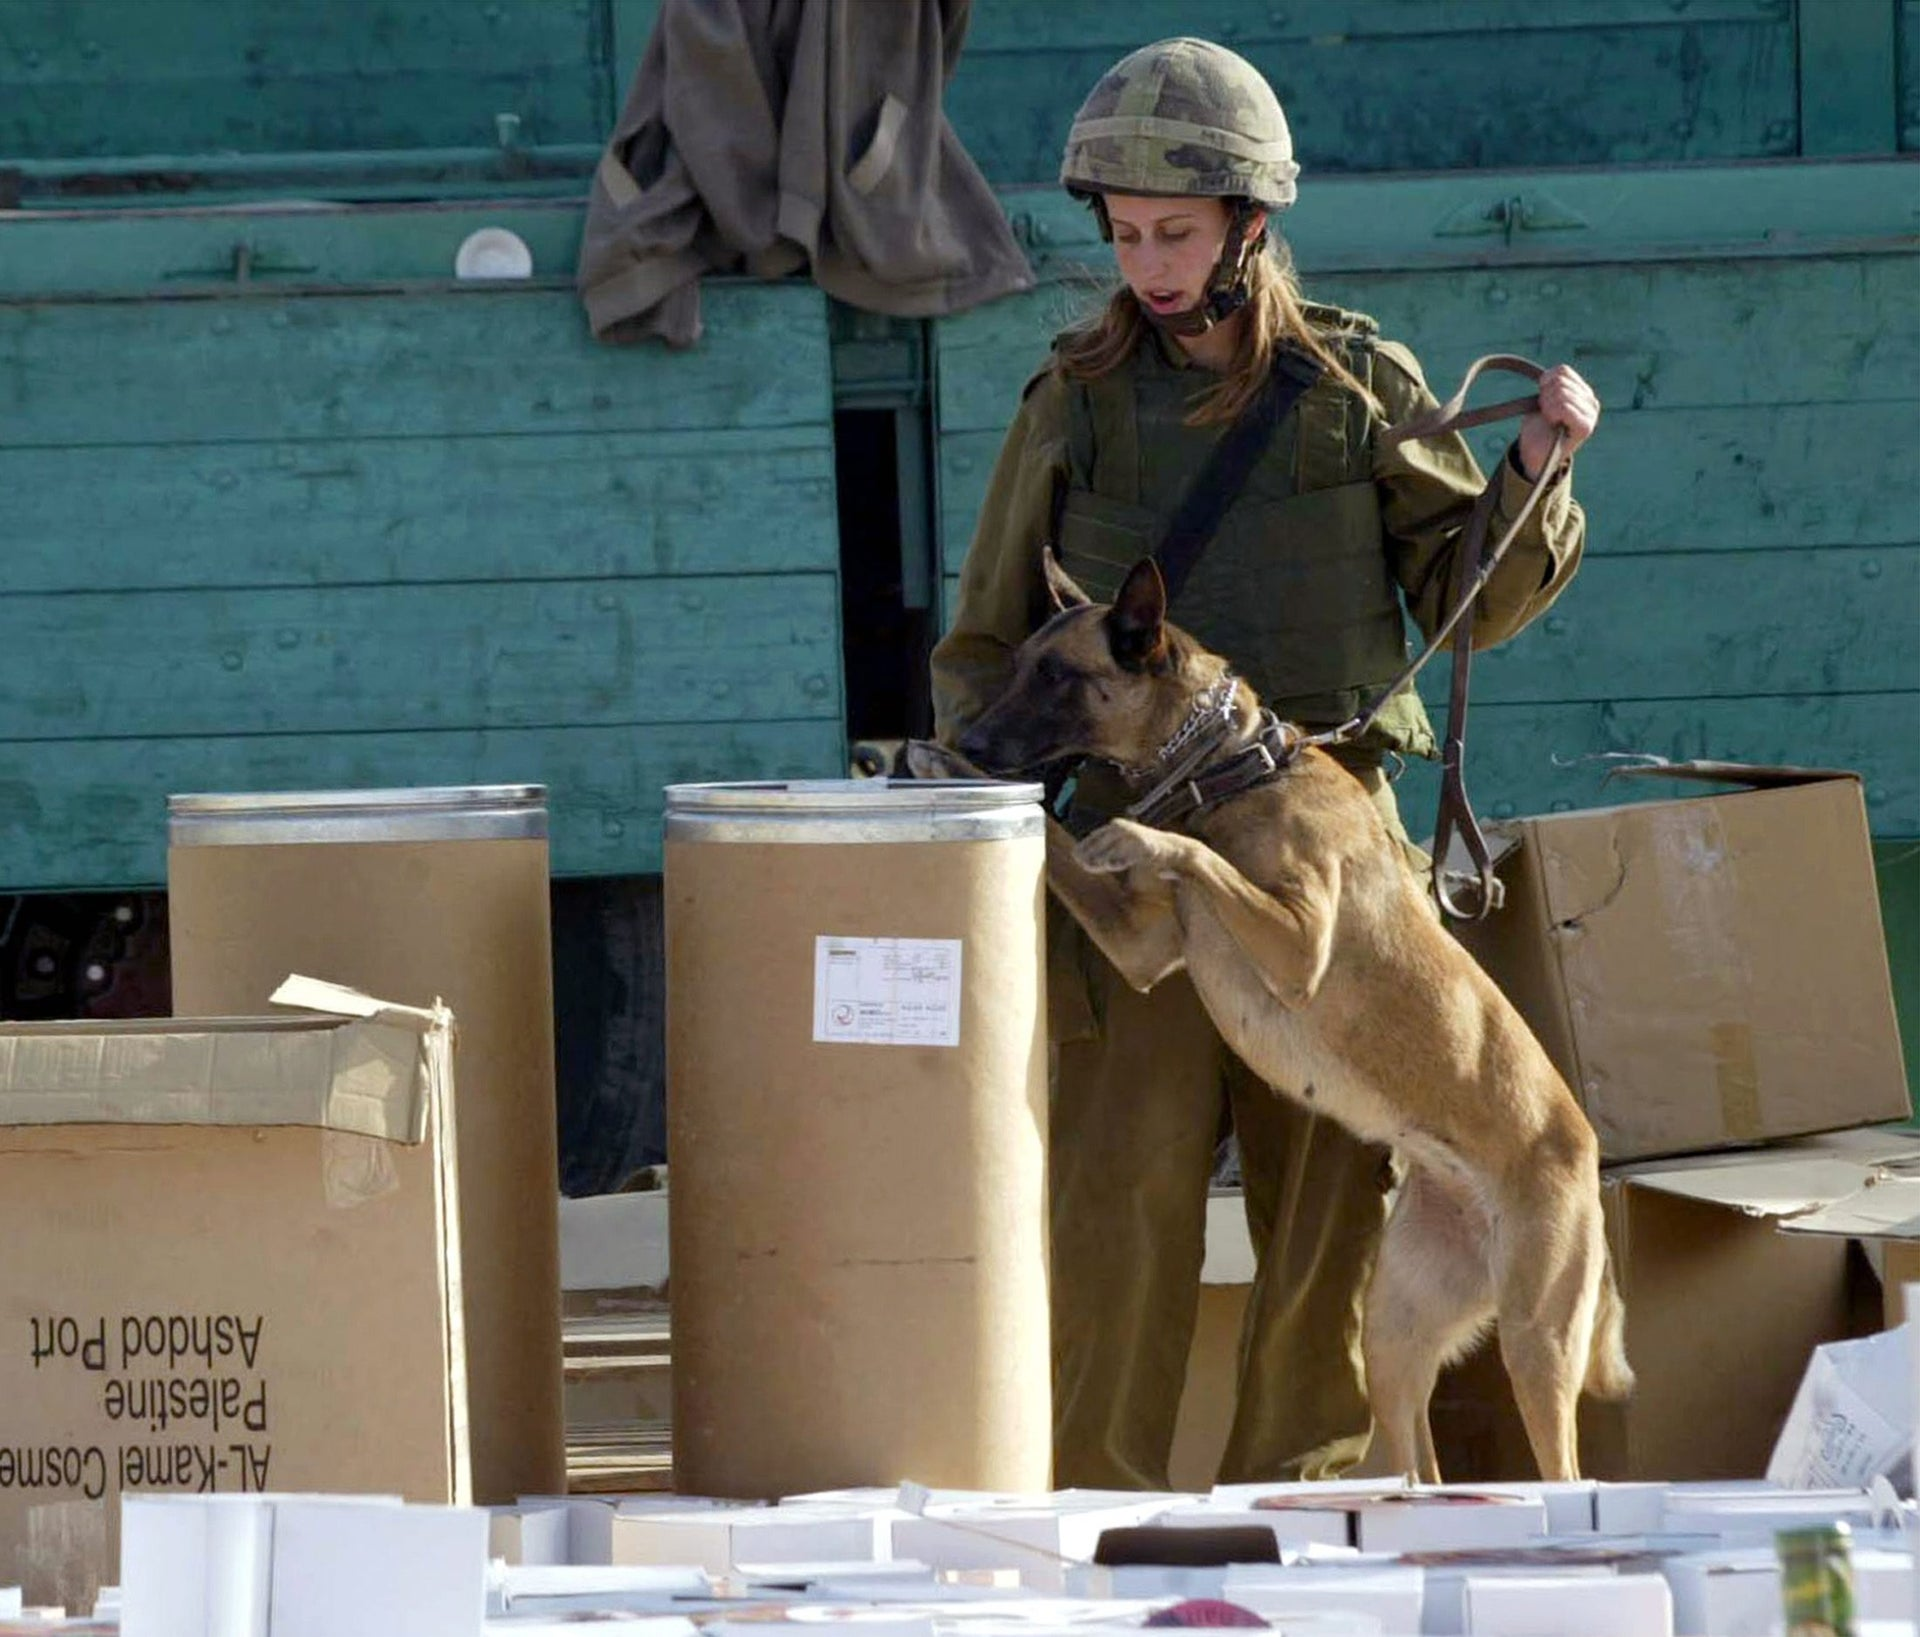 An archive photo showing an Israeli soldier checking boxes from a Palestinian truck with a sniffer dog at the Awrta checkpoint, near the West Bank town of Nablus.